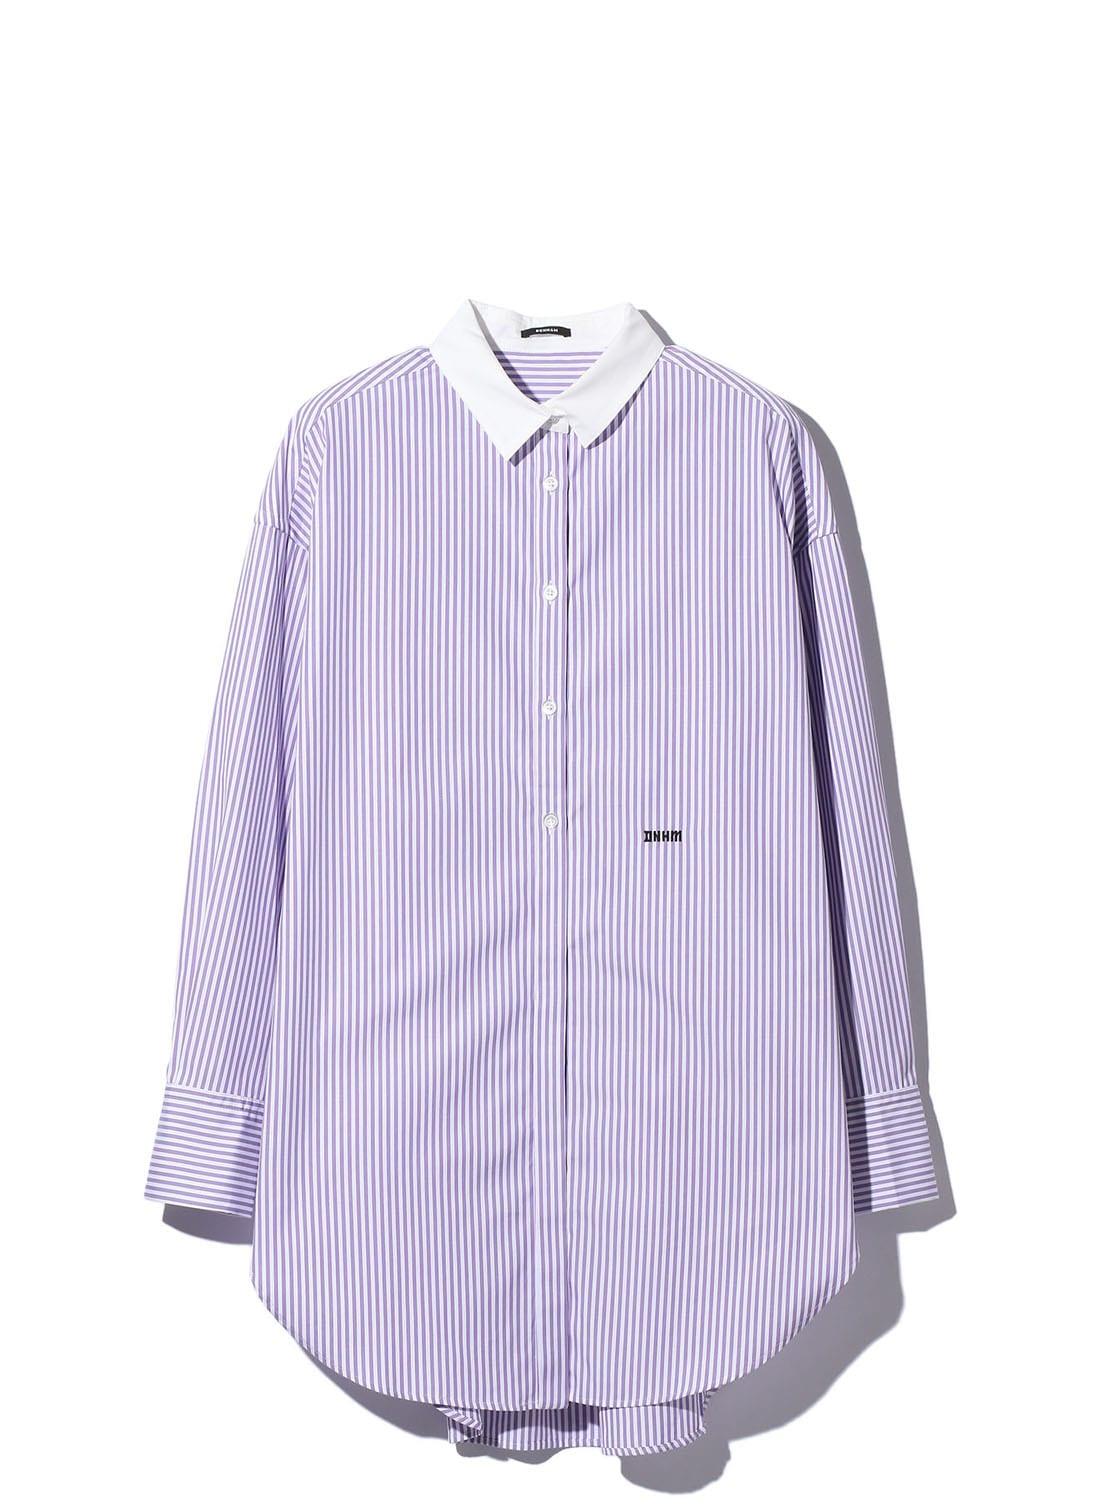 【日本限定】 DNHM STRIPE SHIRTS